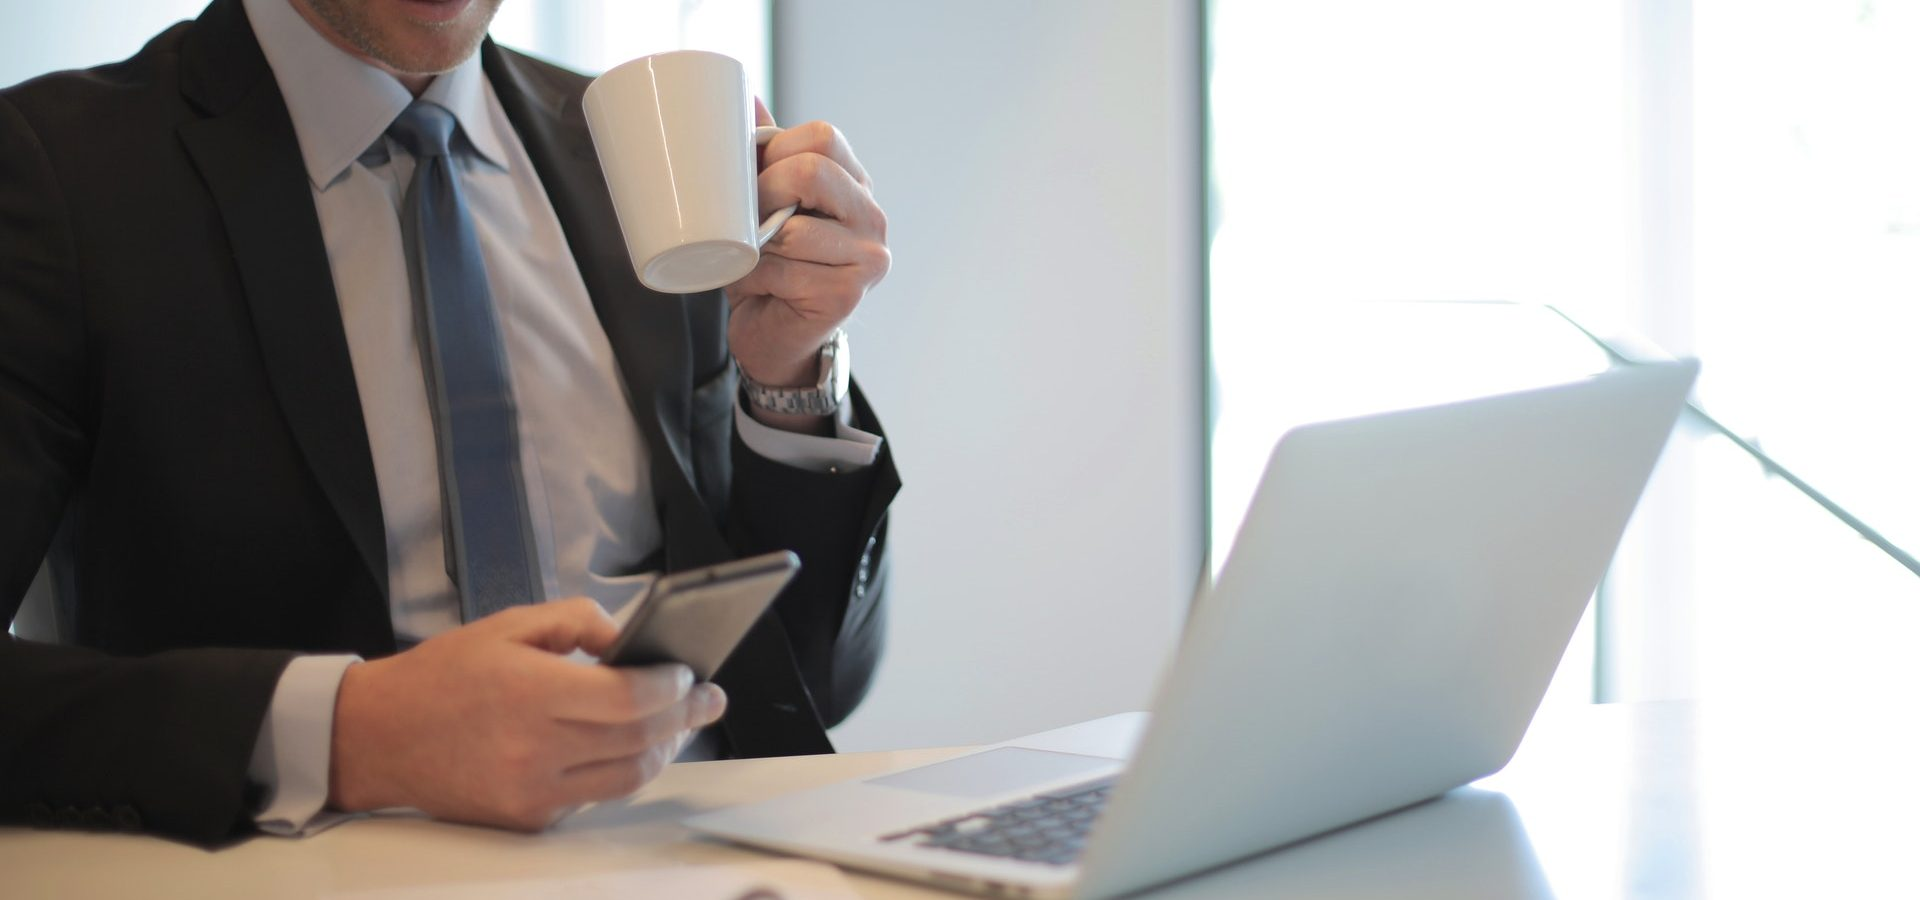 Man in black suit drinking coffee in front of laptop